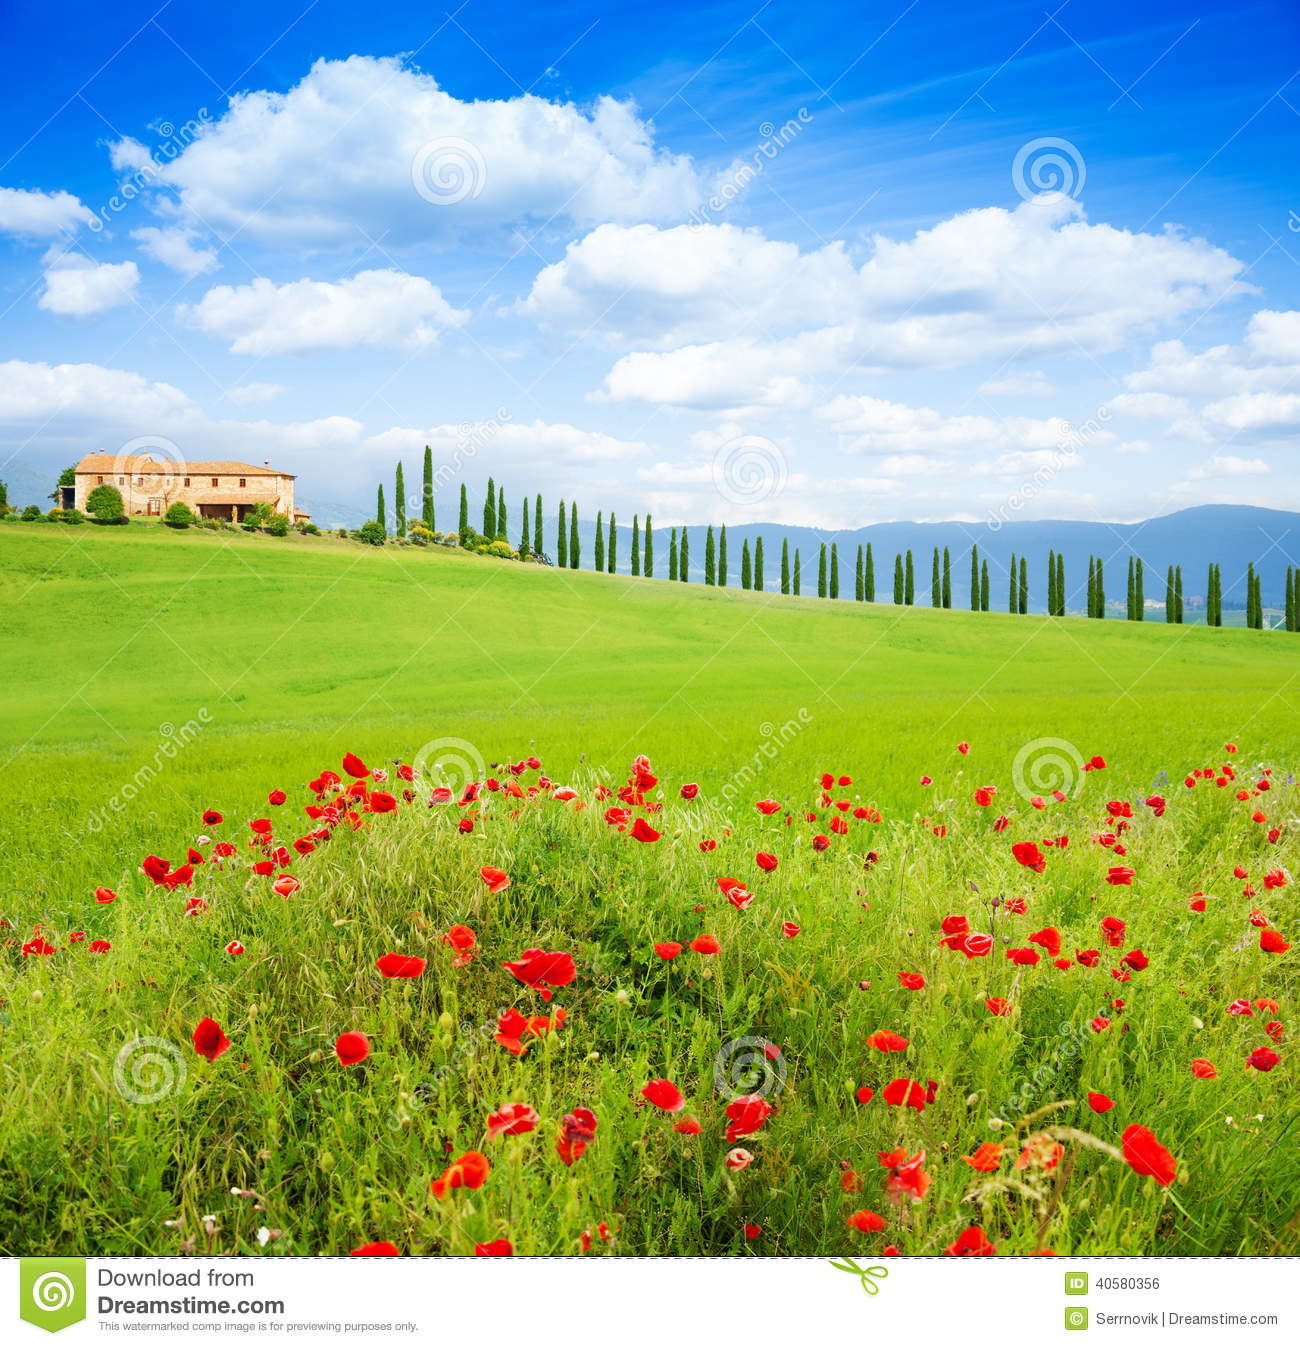 red poppy flowers tuscany landscape italy trees row house 40580356